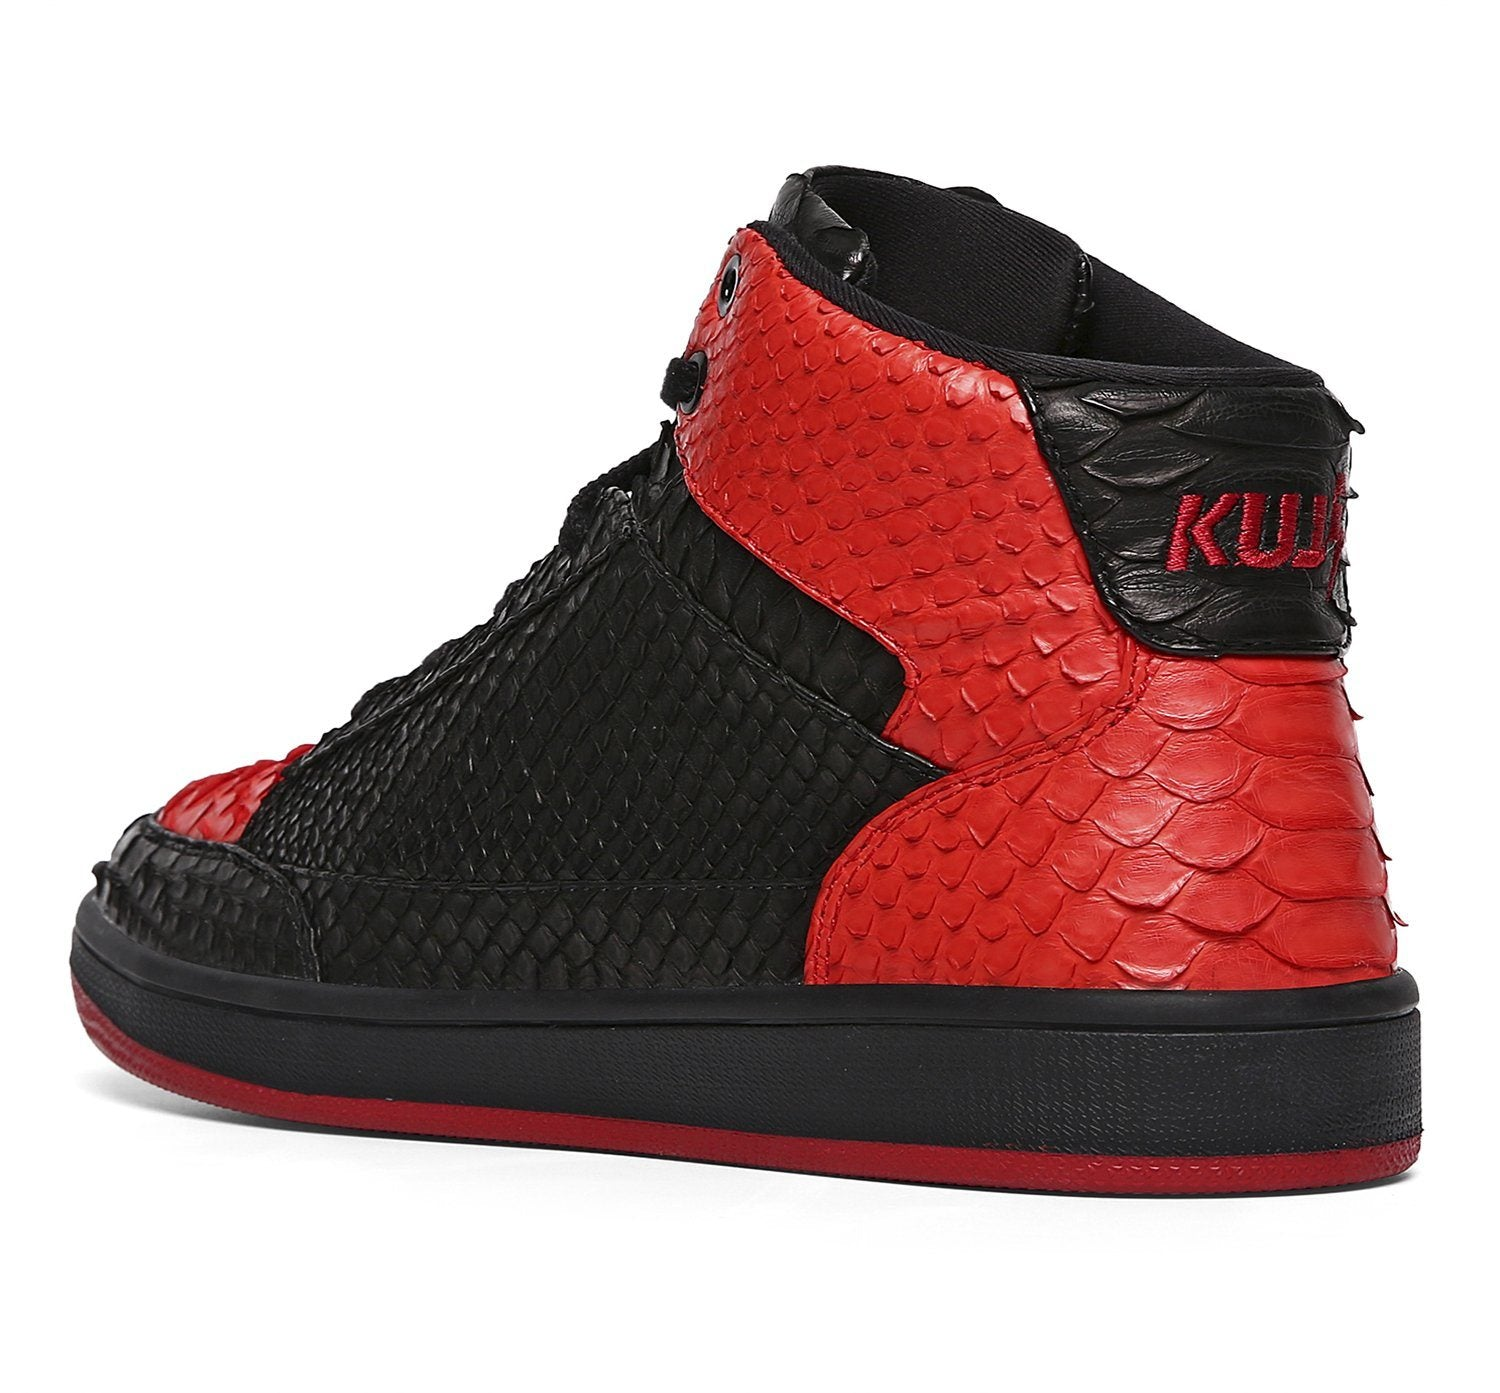 Vintage Snakeskin Leather High Top Shoes - Soulsfeng